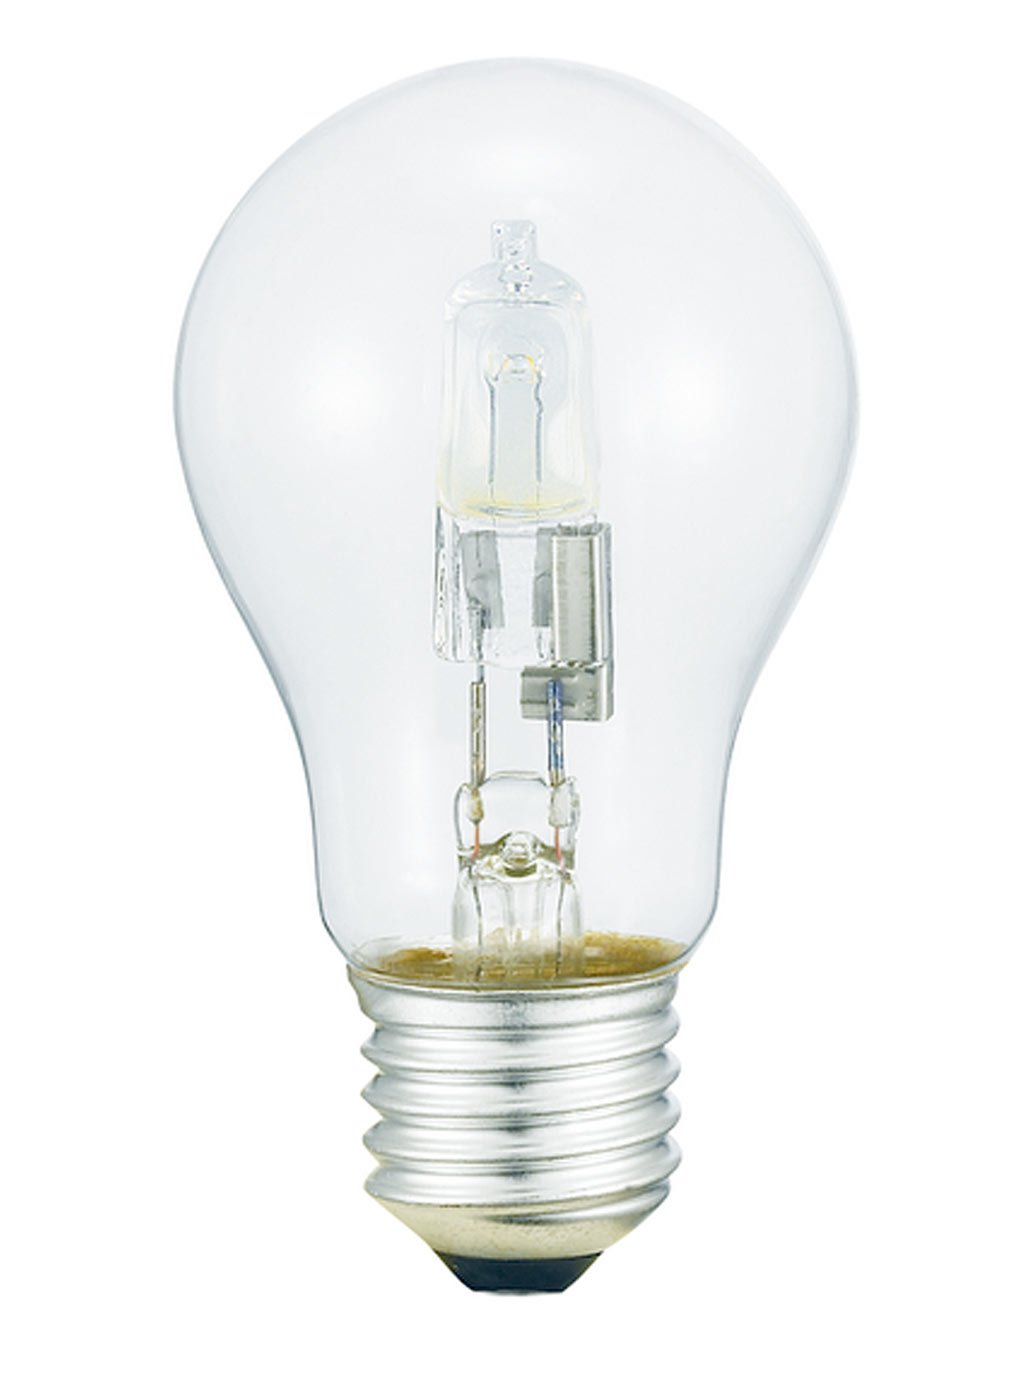 Eveready Eco Halogen Gls 42w 60w Es Clear At Barnitts